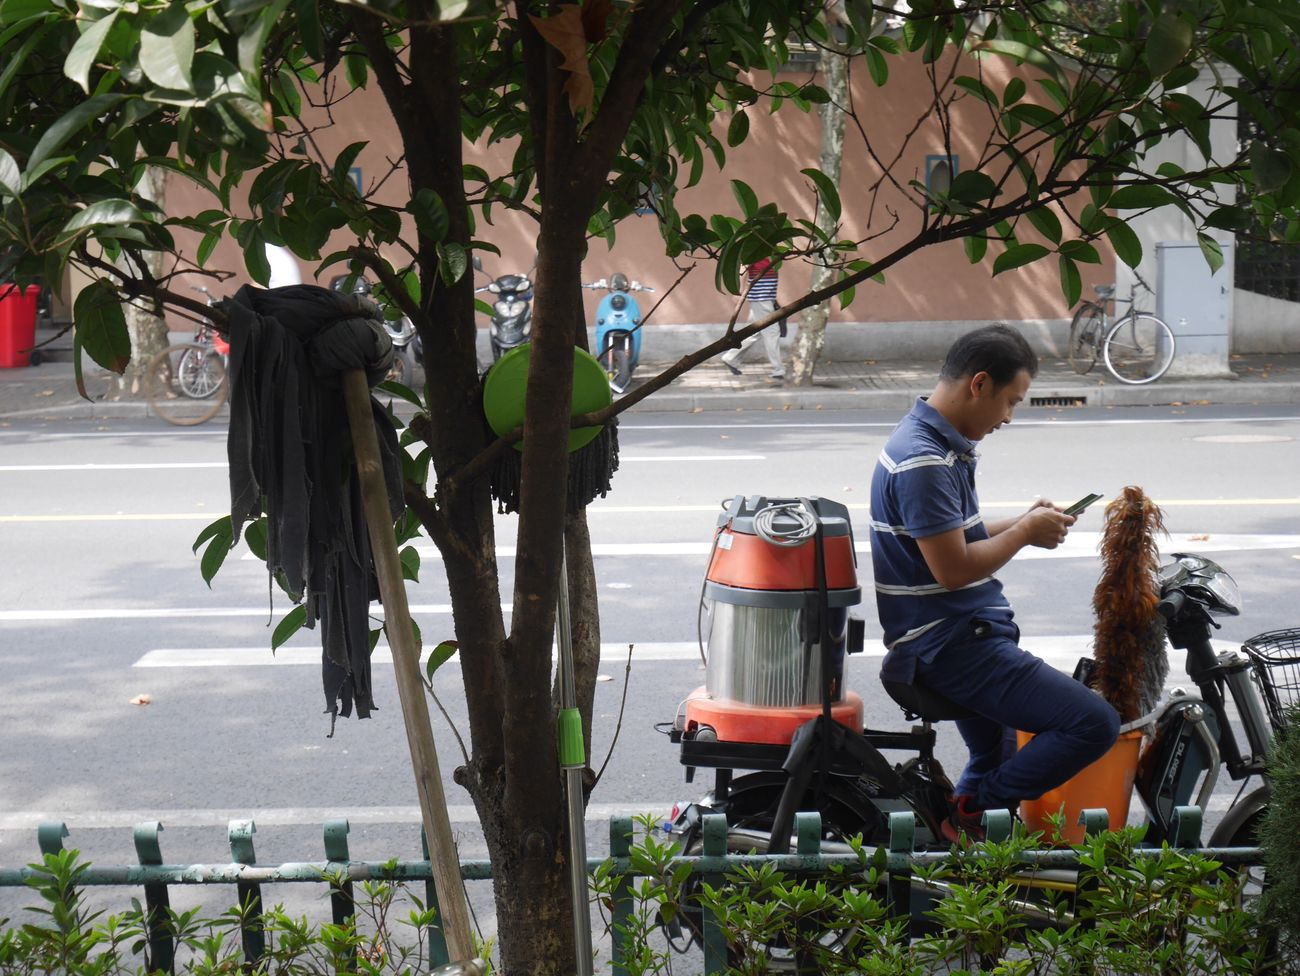 Shanghai . Full Length Tree Casual Clothing Sitting Outdoors Leisure Activity One Person Growth Day Nature Adult Mobile Conversations Shanghai Shanghai Streets Technology Streetphotography Street Photography Conversation Communication Street